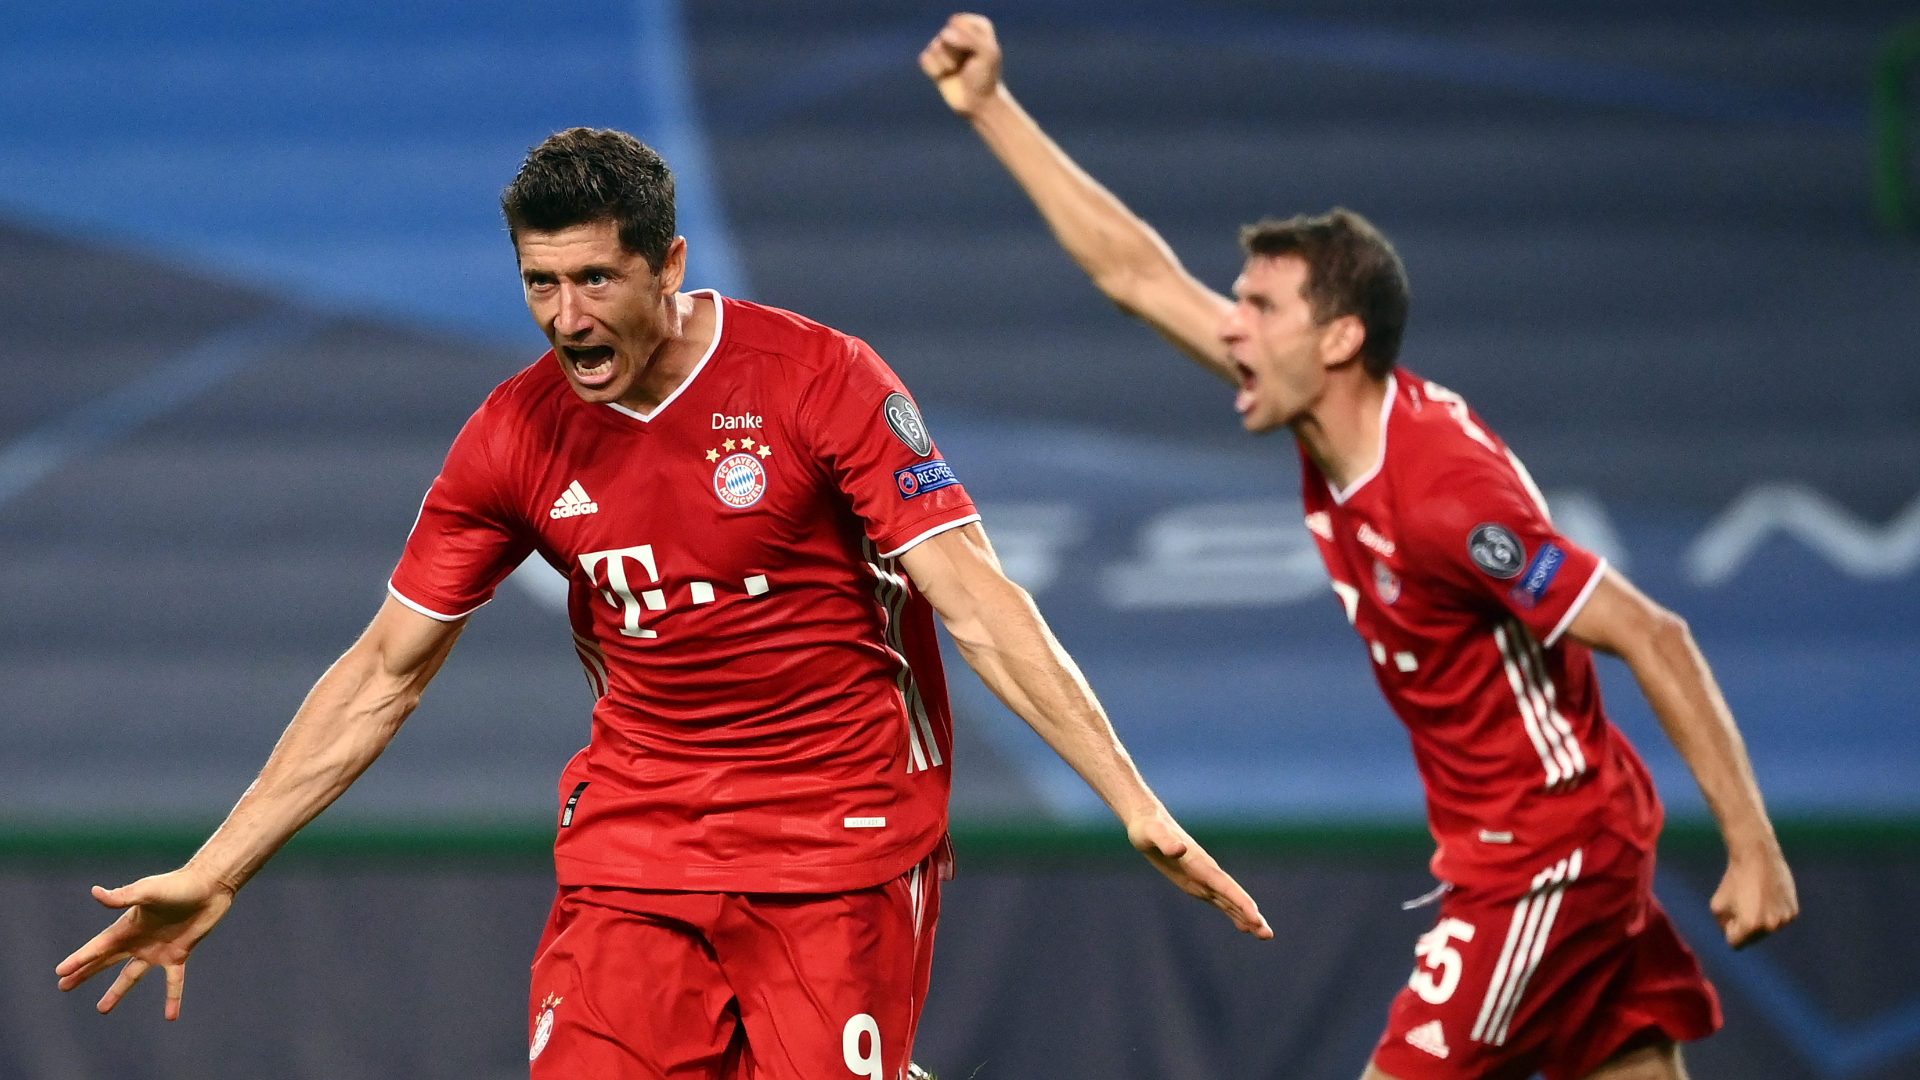 Psg Vs Bayern Munich Betting Tips Latest Odds Team News Preview And Predictions Goal Com